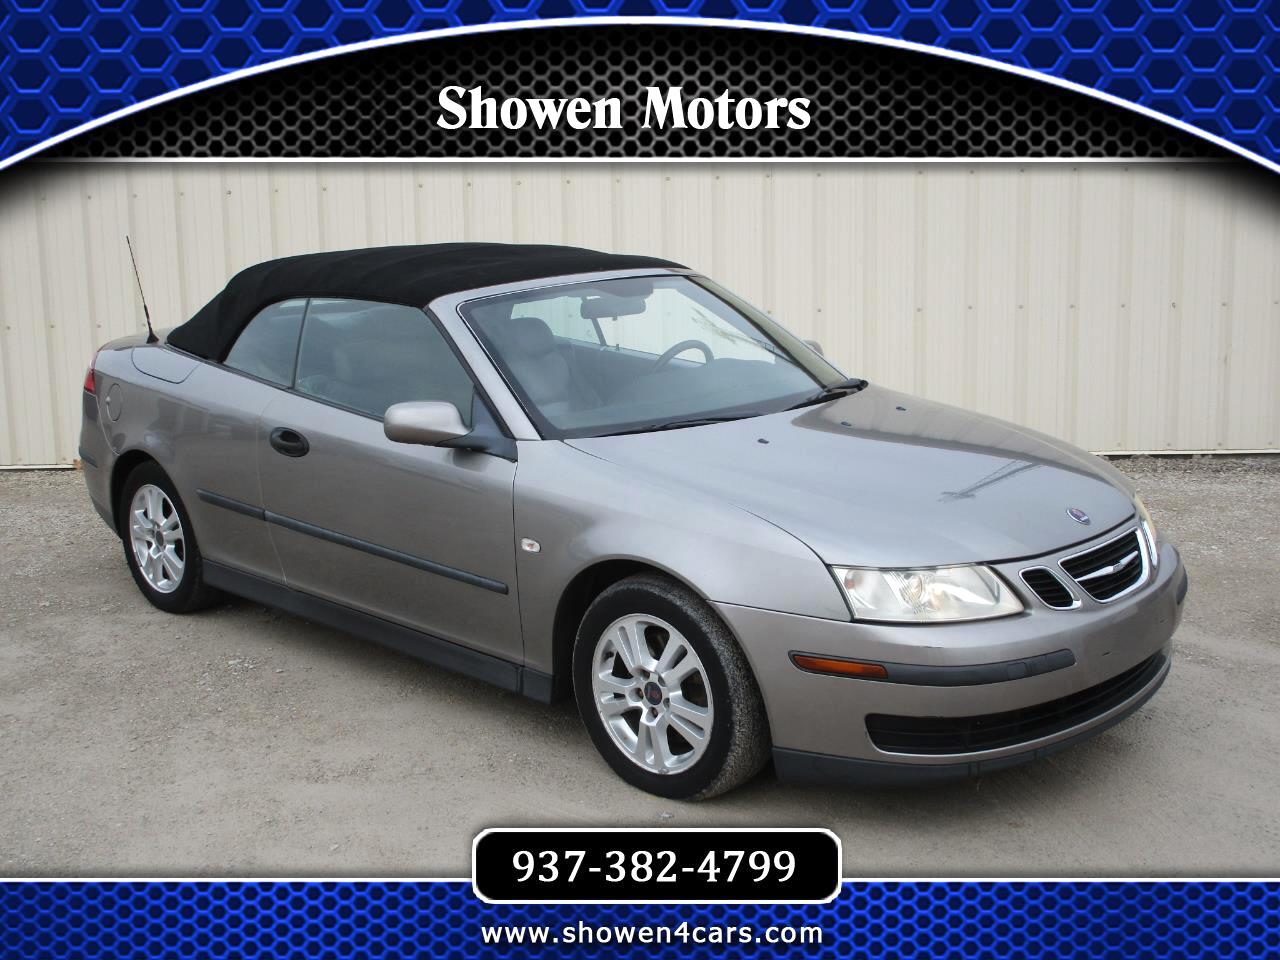 Saab 9-3 Linear Convertible 2005